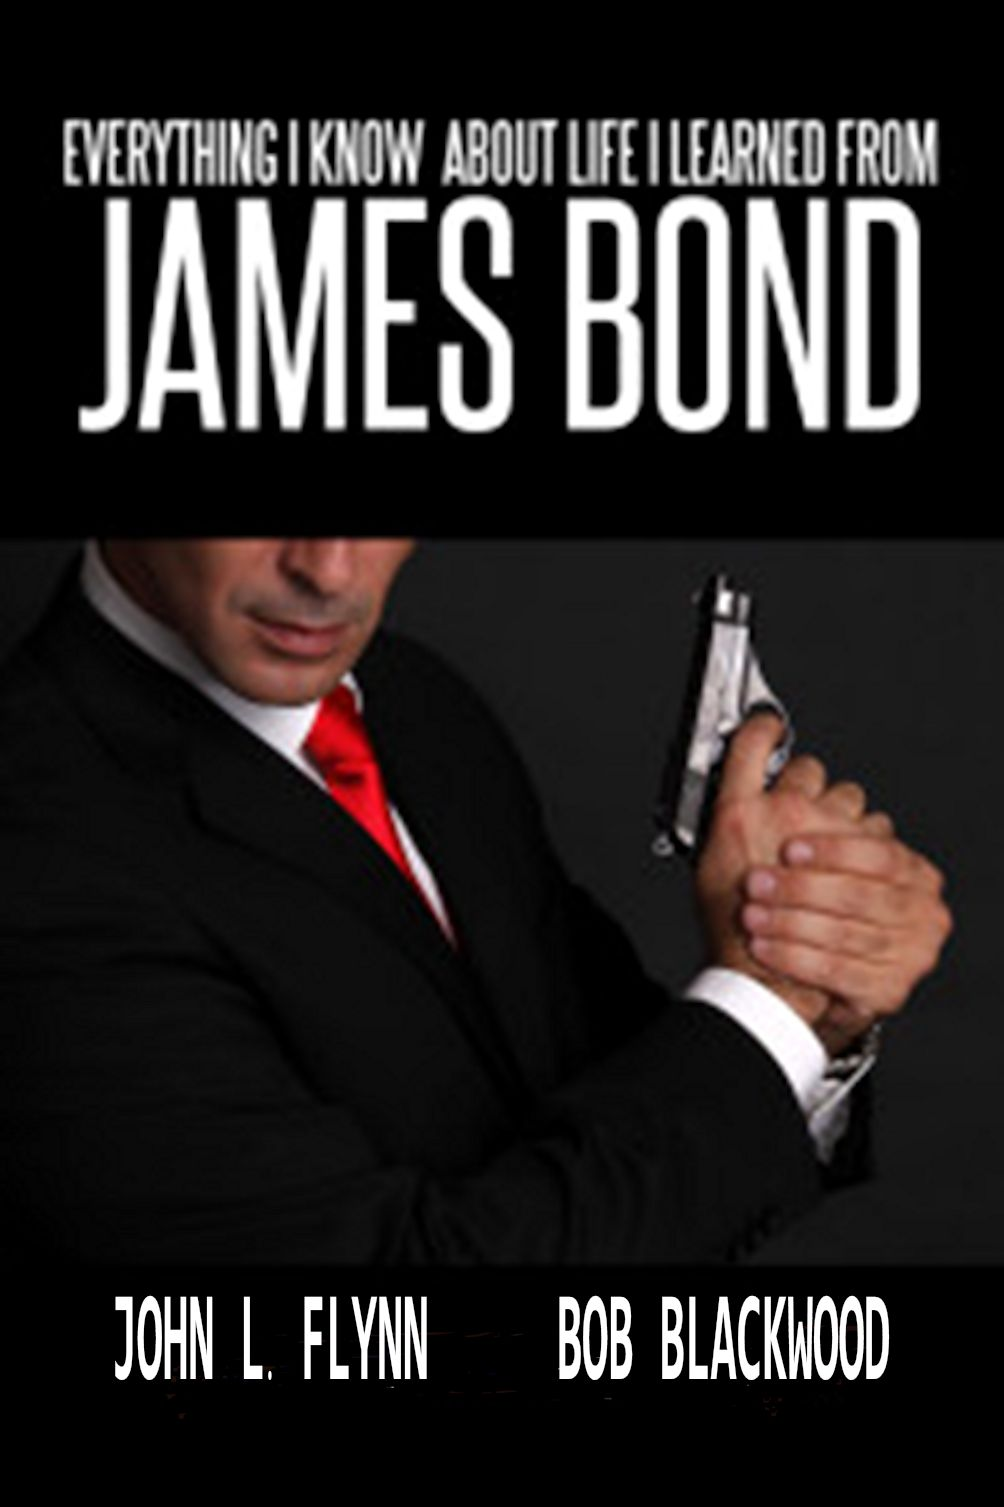 James Bond movies nonfiction book